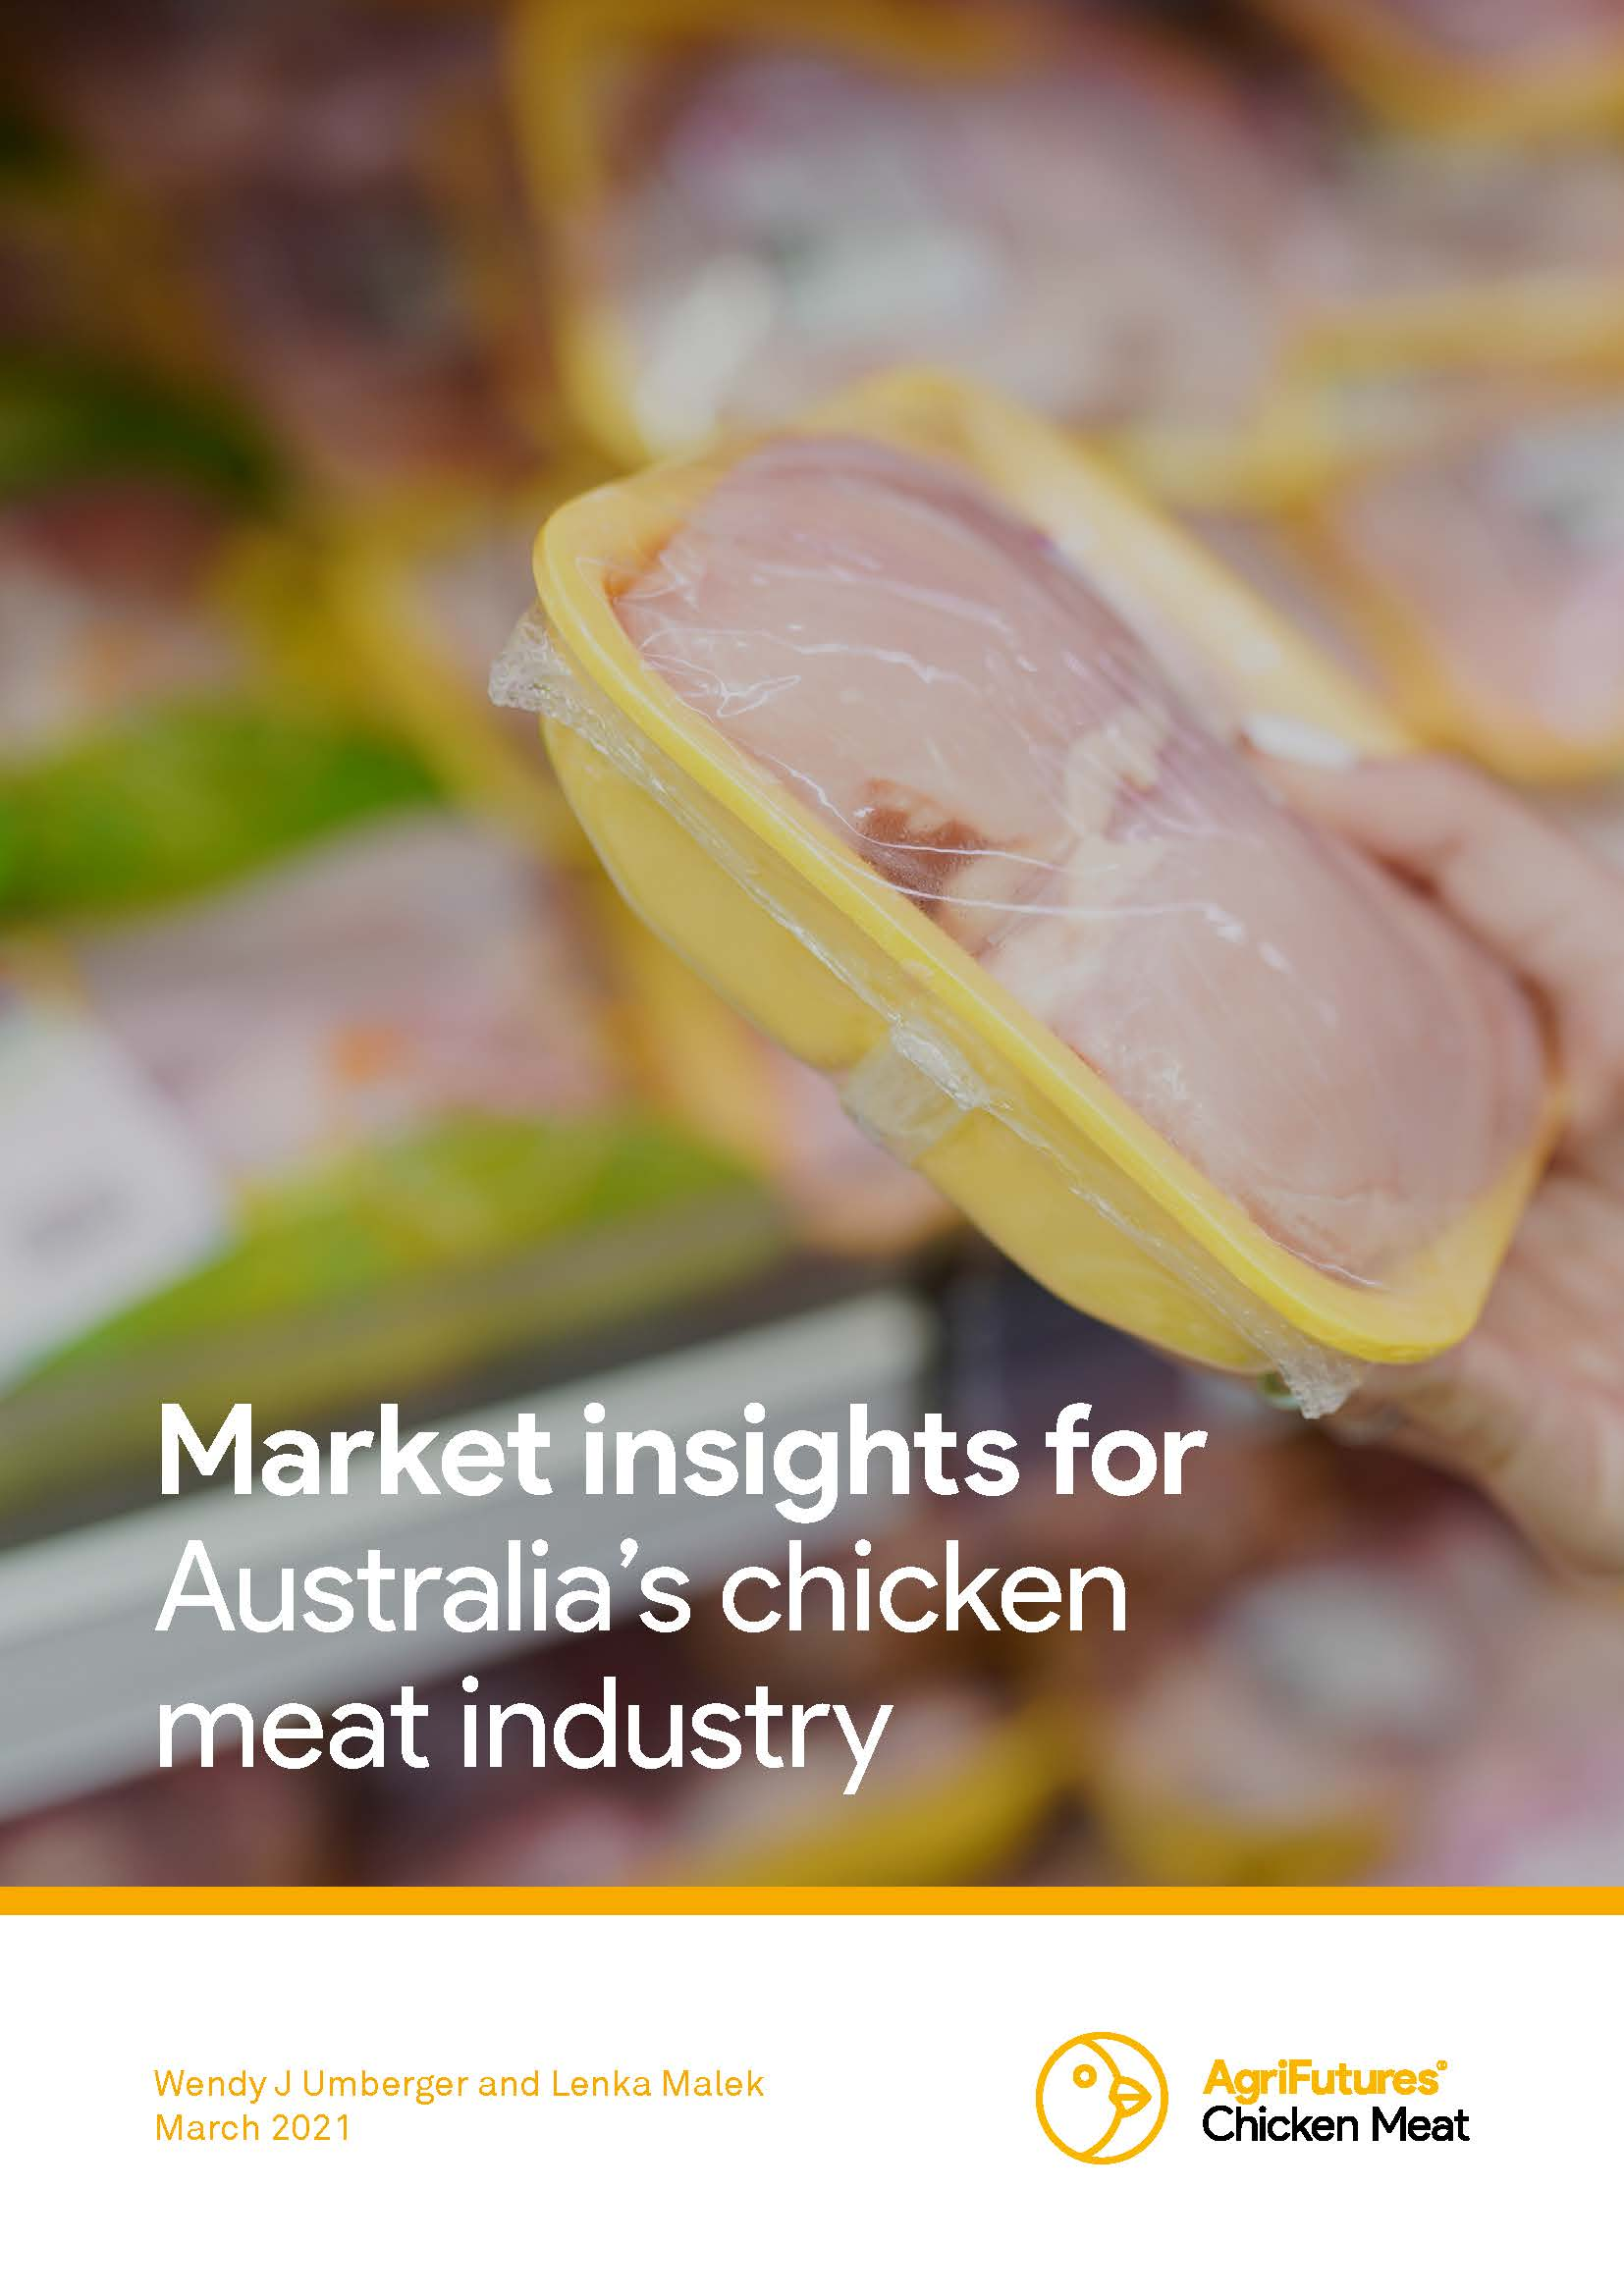 Market insights for Australia's chicken meat industry - image